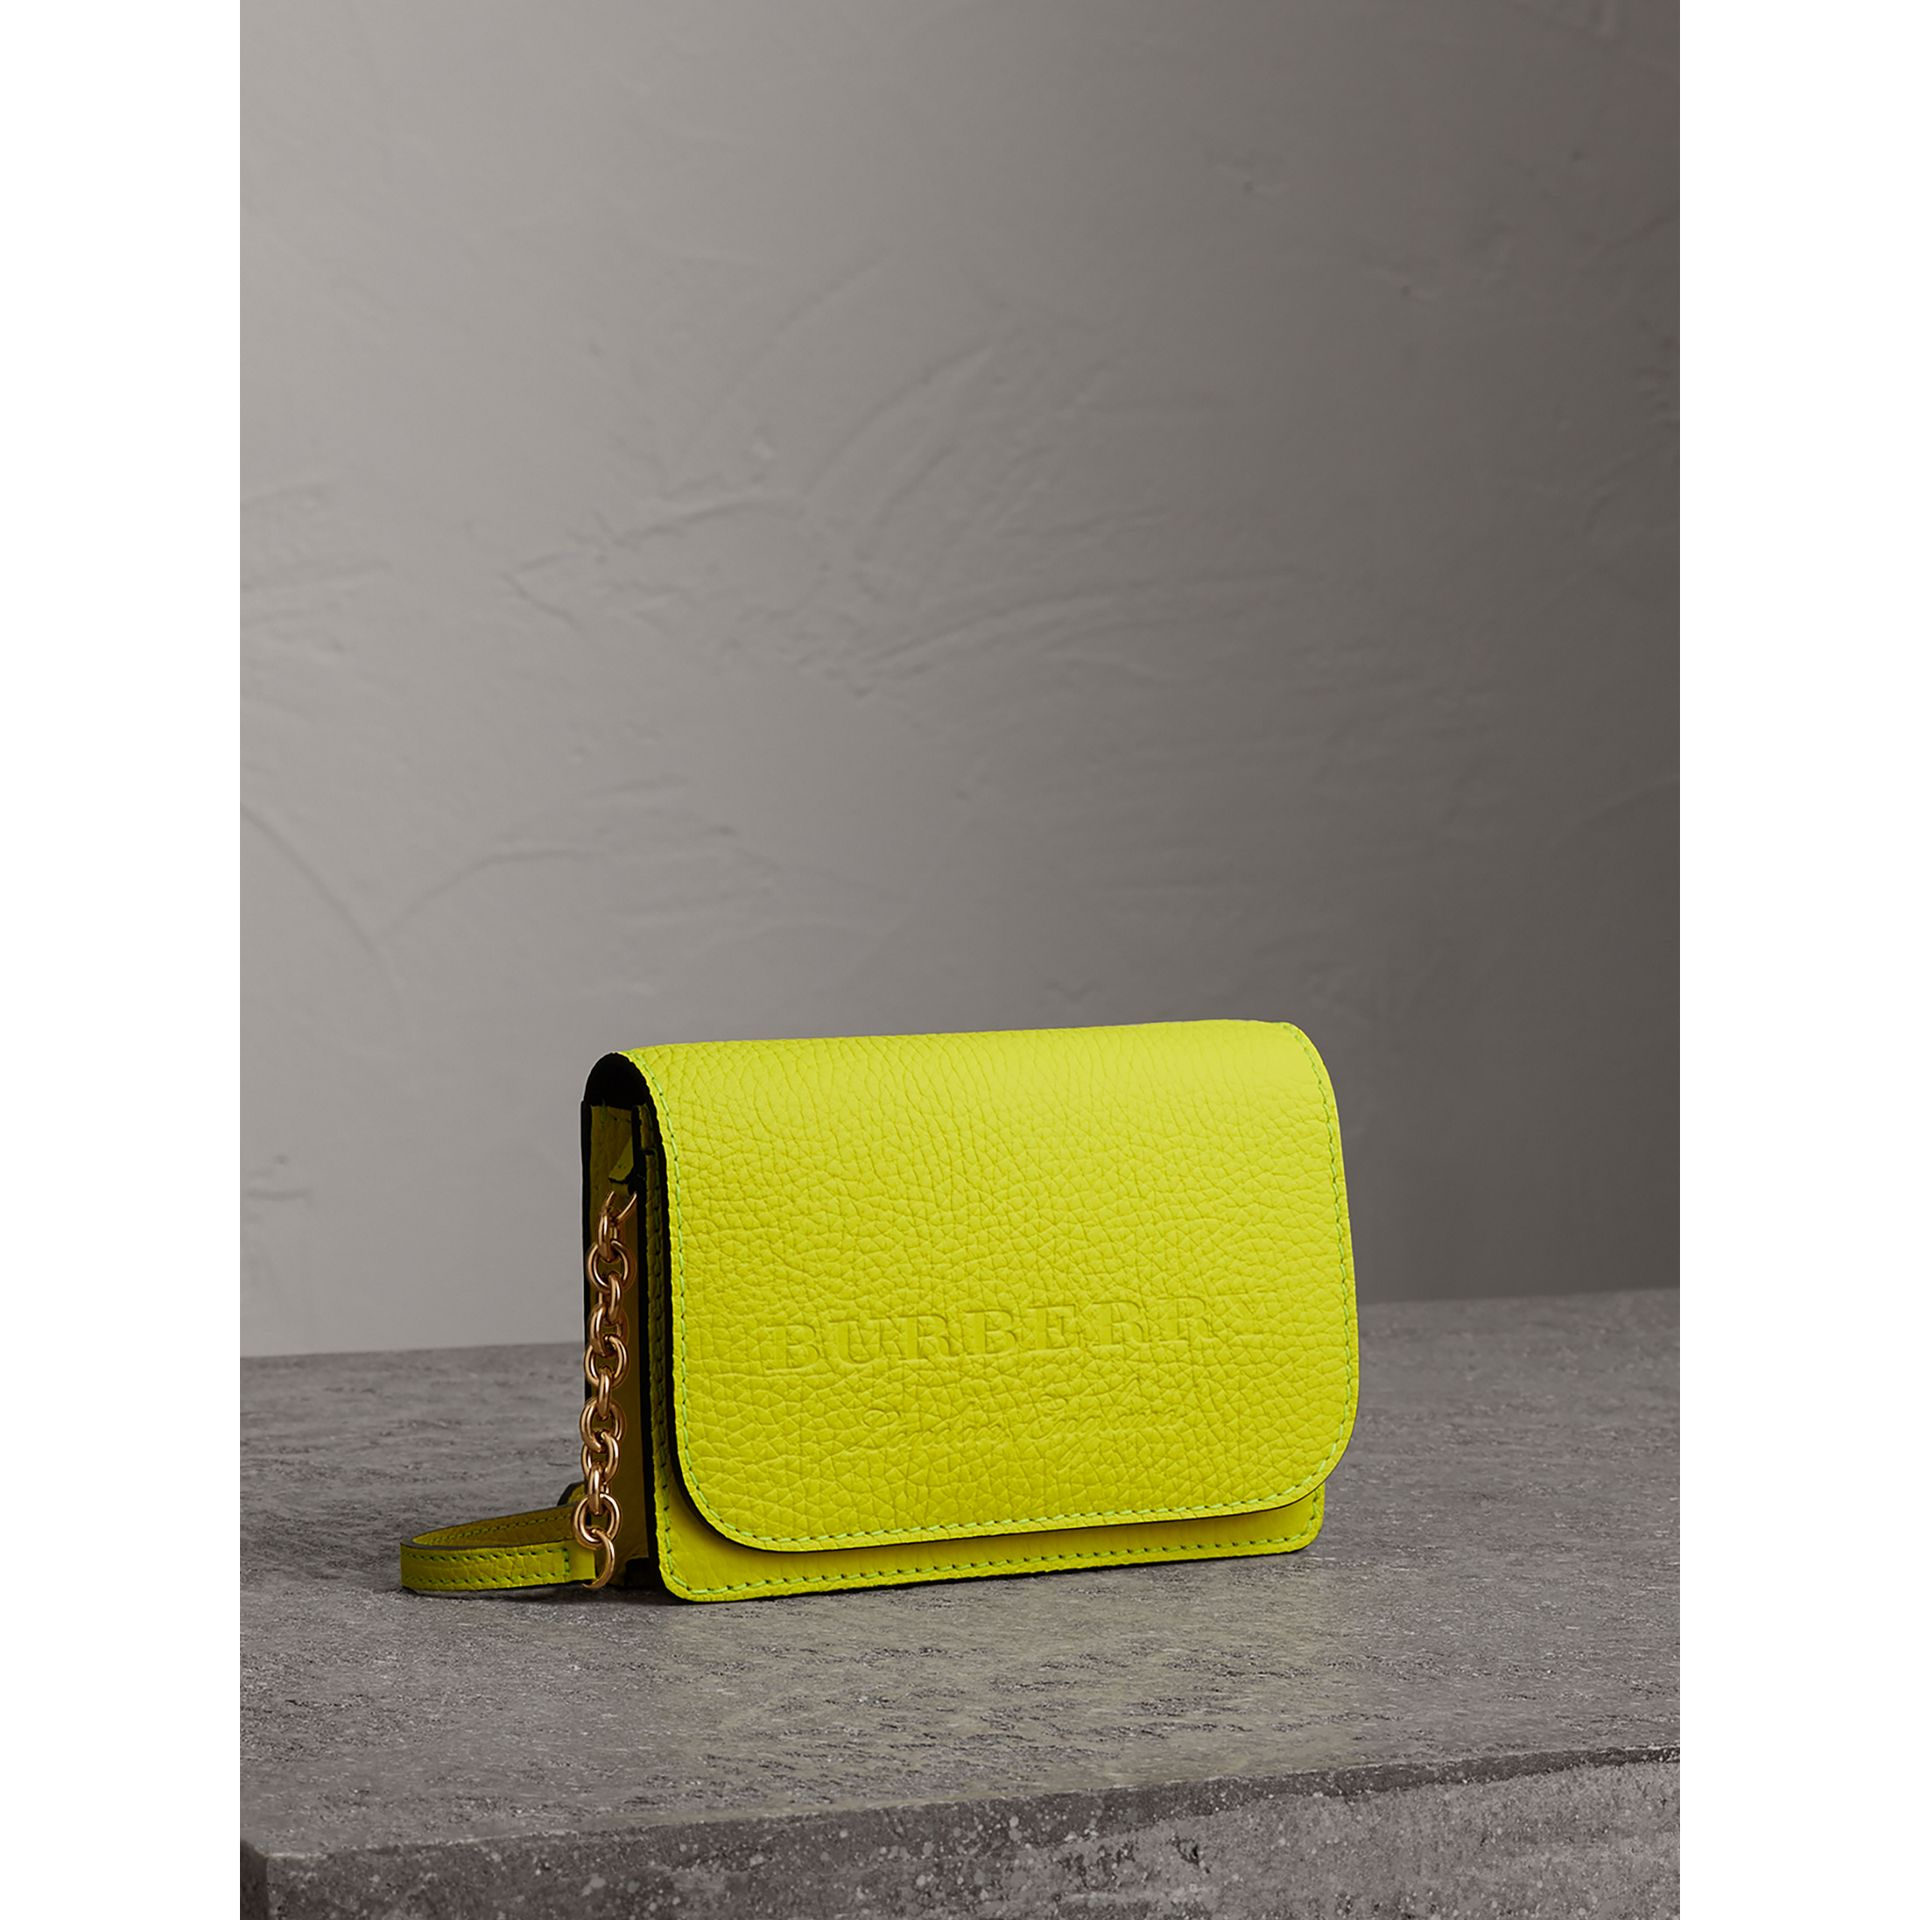 Embossed Leather Wallet with Detachable Strap in Bright Yellow - Women | Burberry Australia - gallery image 7